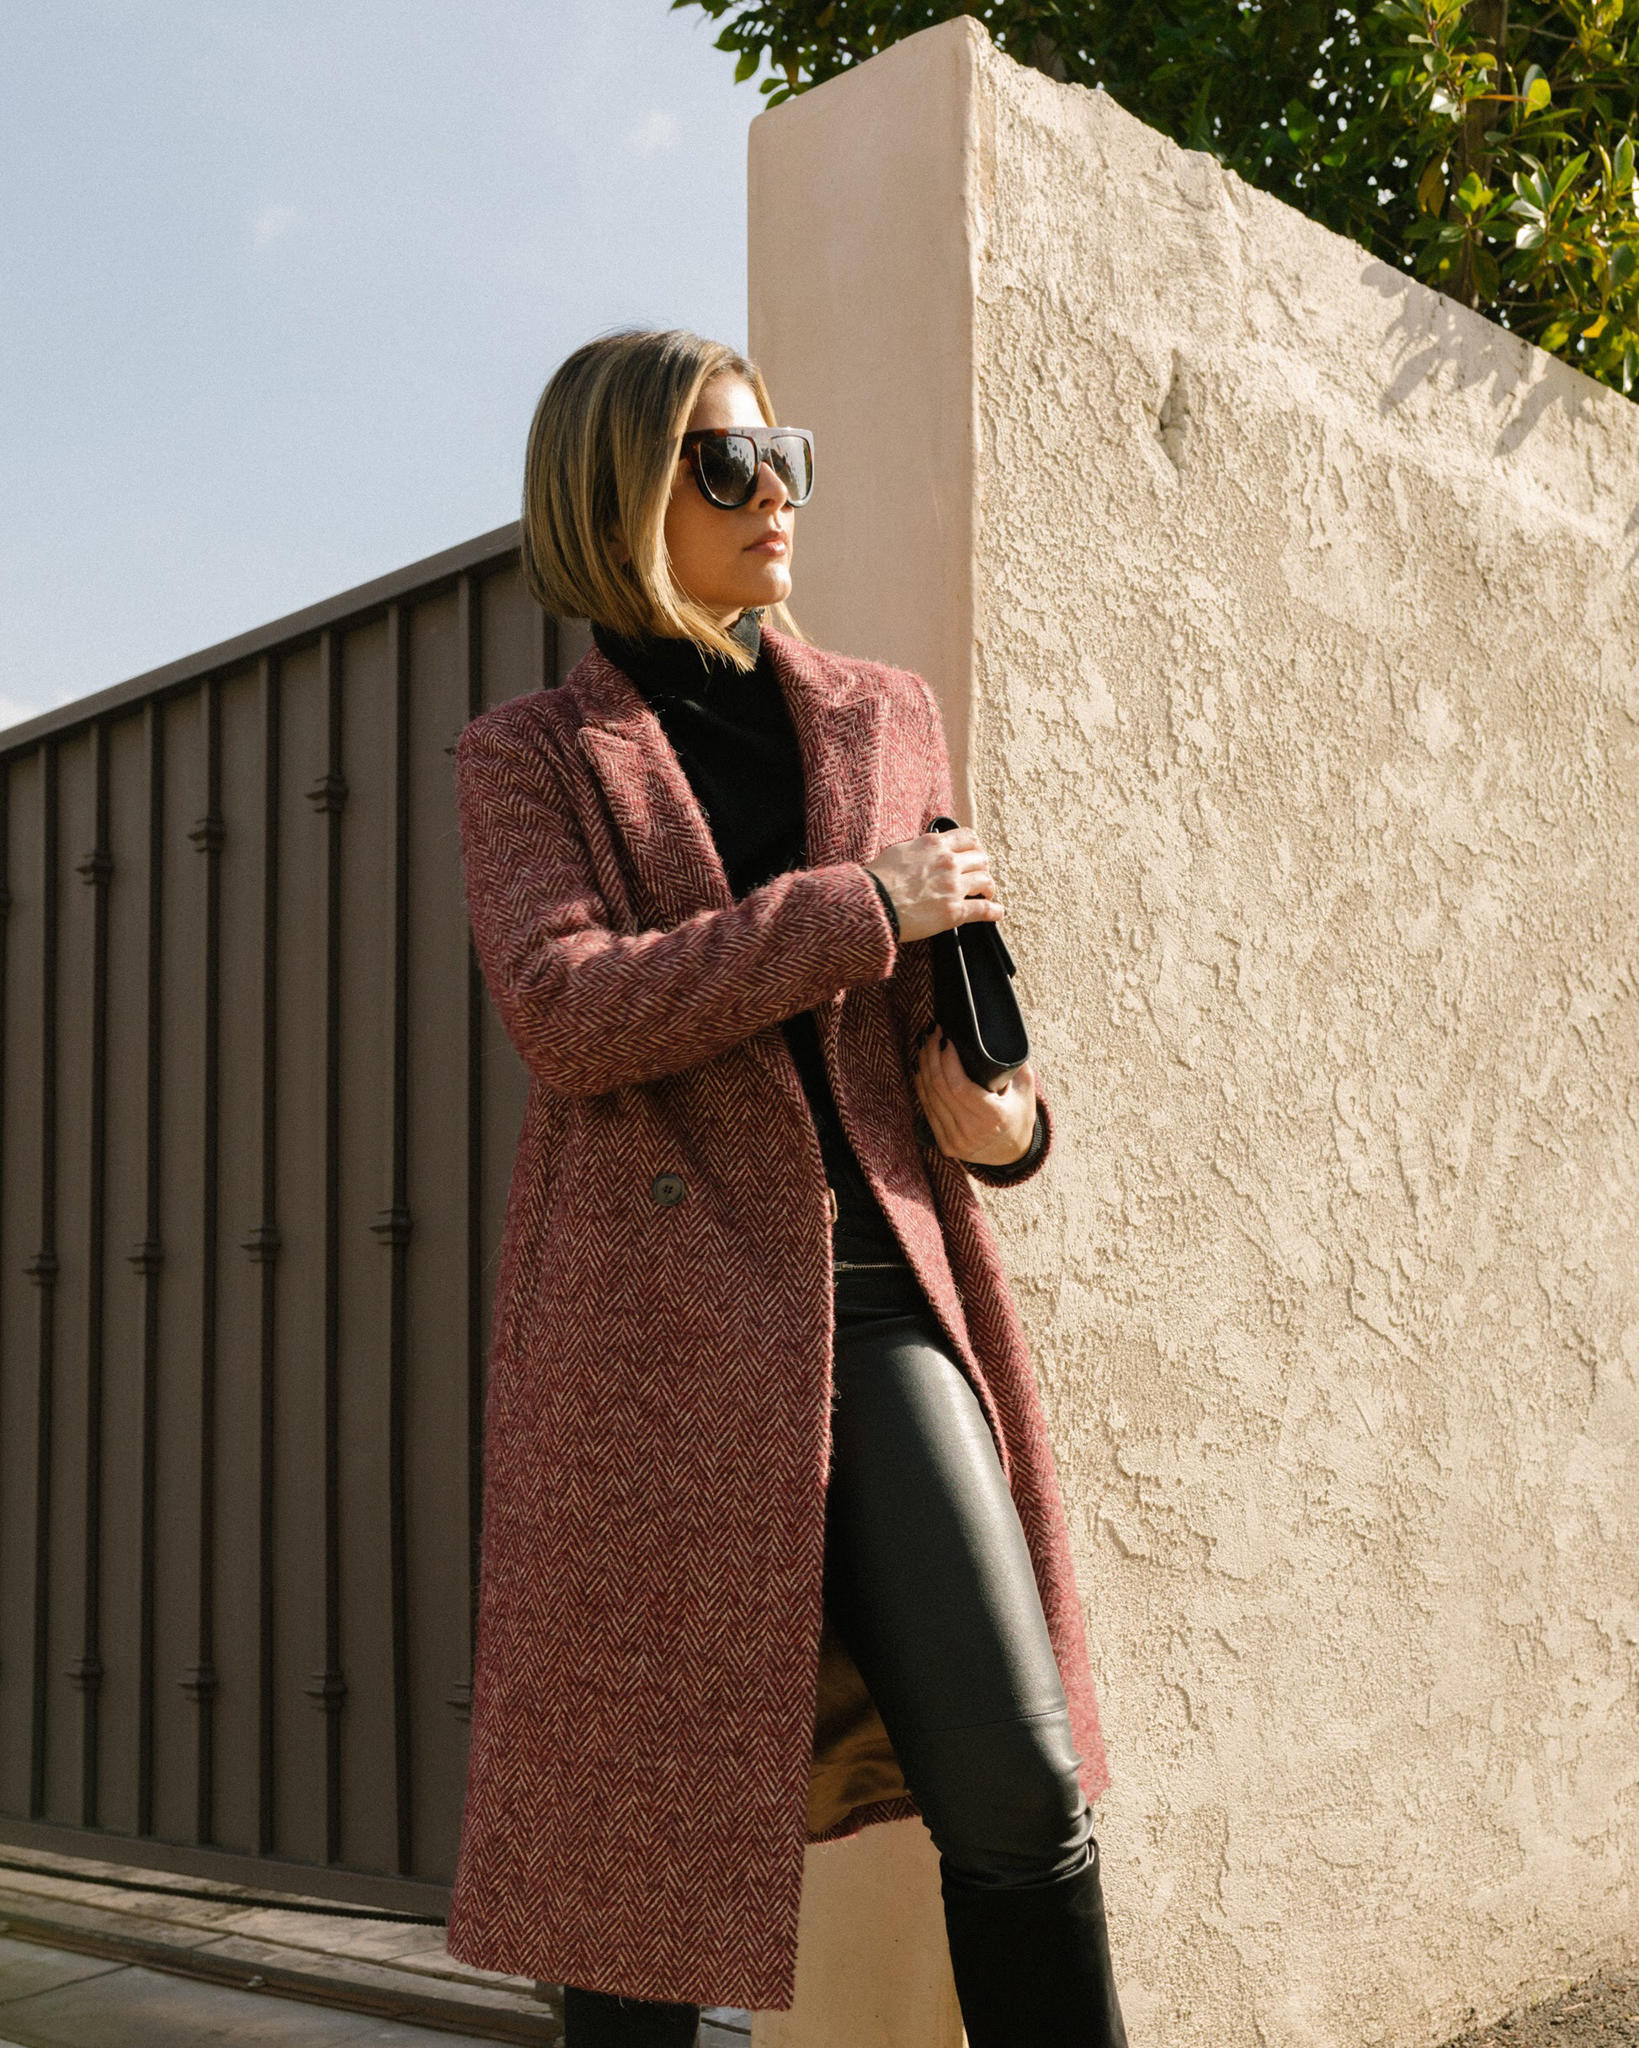 Coats to Get You Through Winter by Pam hetlinger | TheGirlFromPanama.com | Red Tweed Coat, chic winter outfit, winter layers, celine sunglasses